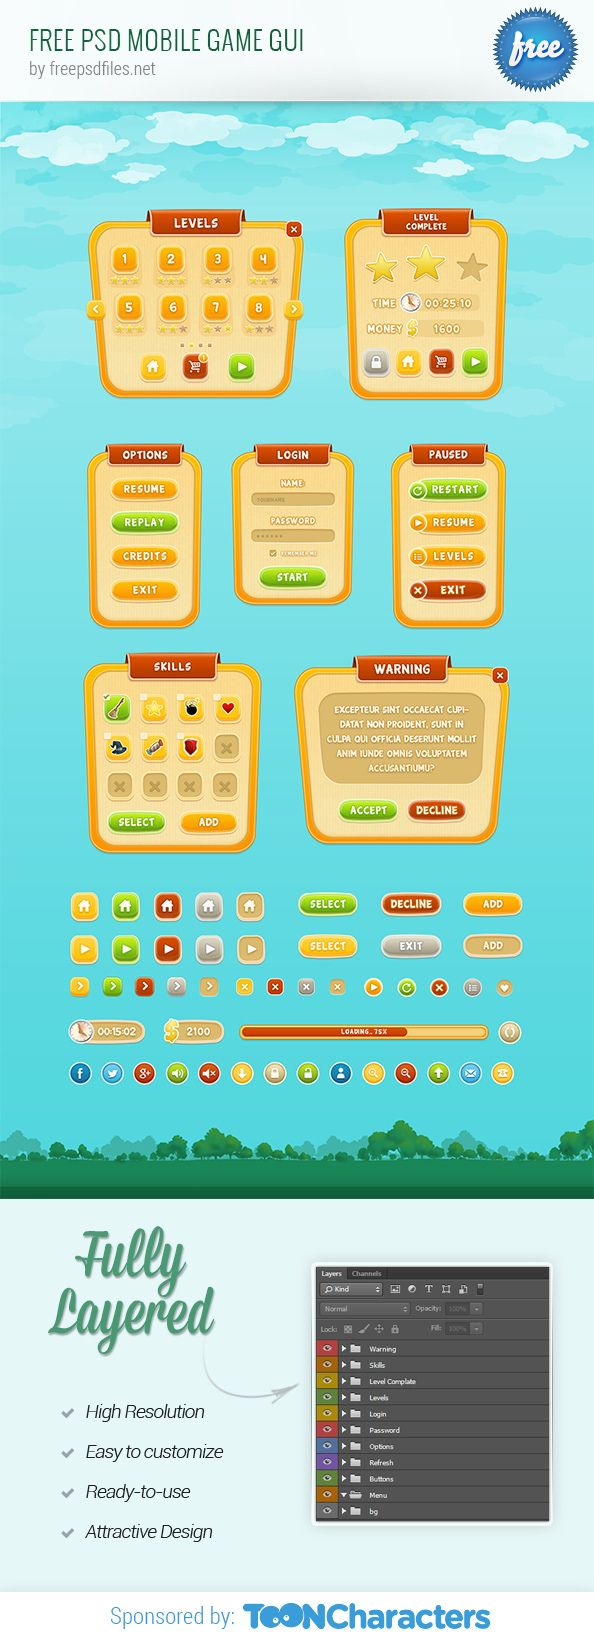 Free PSD Mobile Game GUI - http://ispotdesign.com/free-psd-mobile-game-gui/